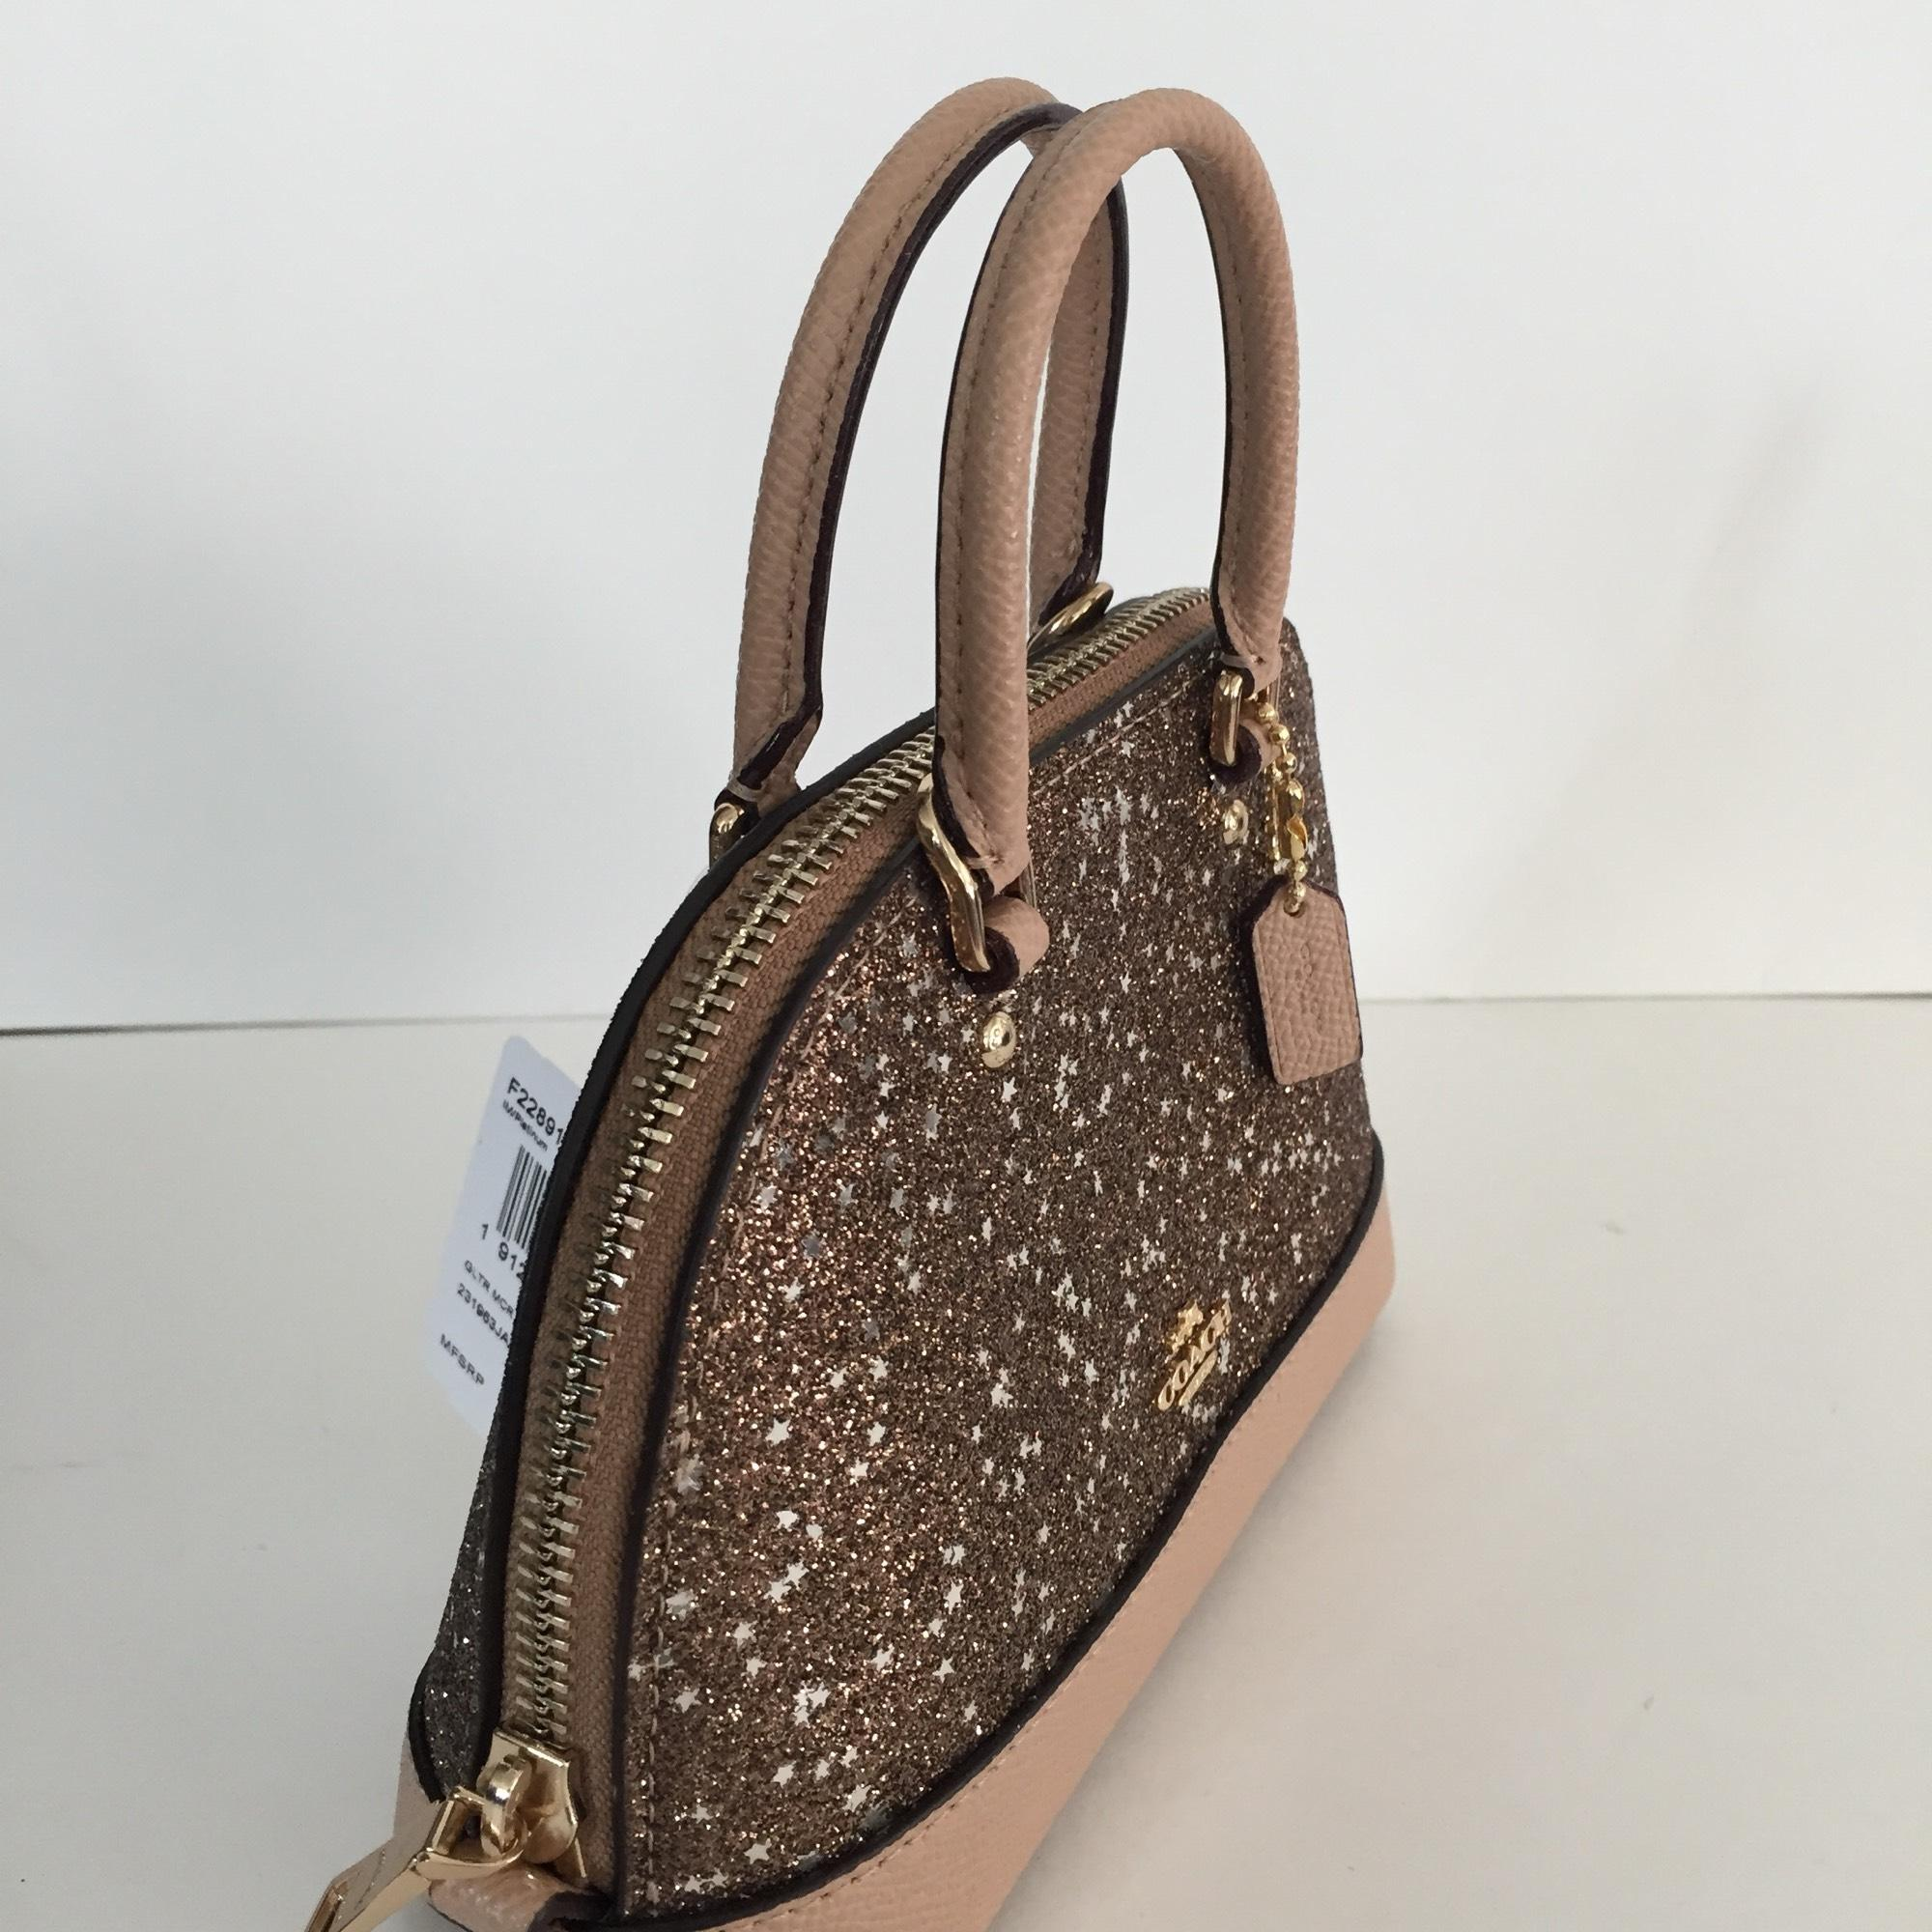 8d25274e42c1 ... top quality coach micro mini sierra satchel with star glitter light  gold canvas cross body bag